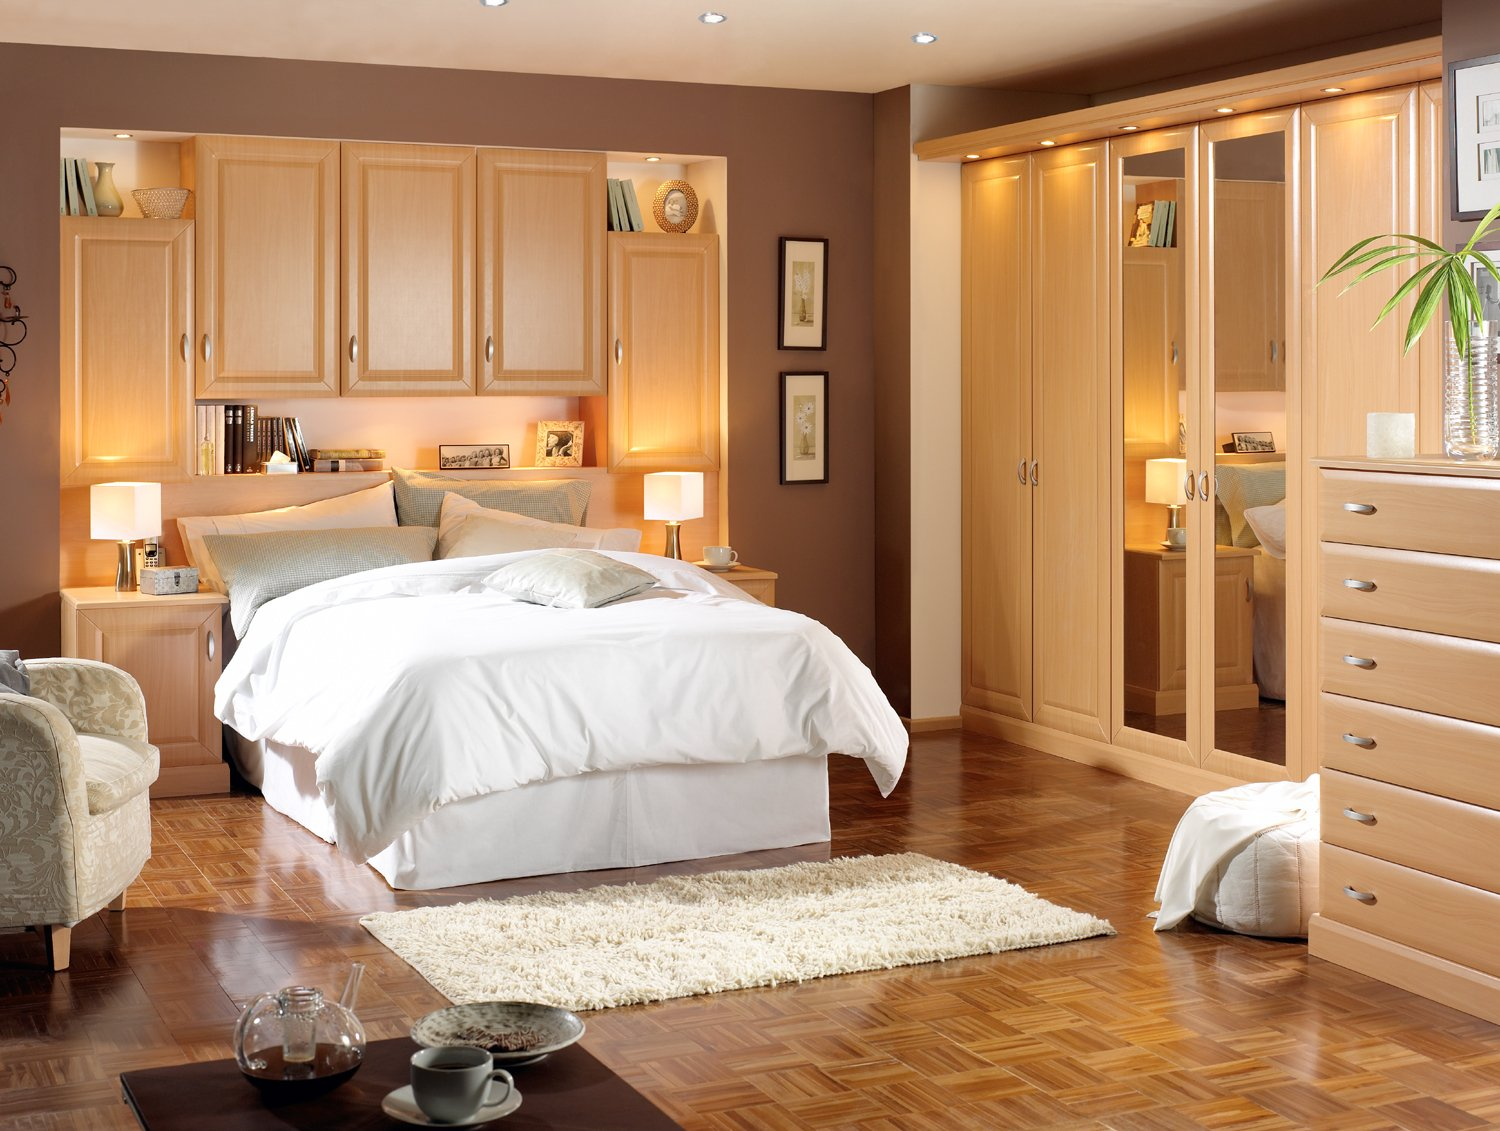 Bedroom Design Pictures Of Bedrooms Cupboard Designs Pictures An Interior Design